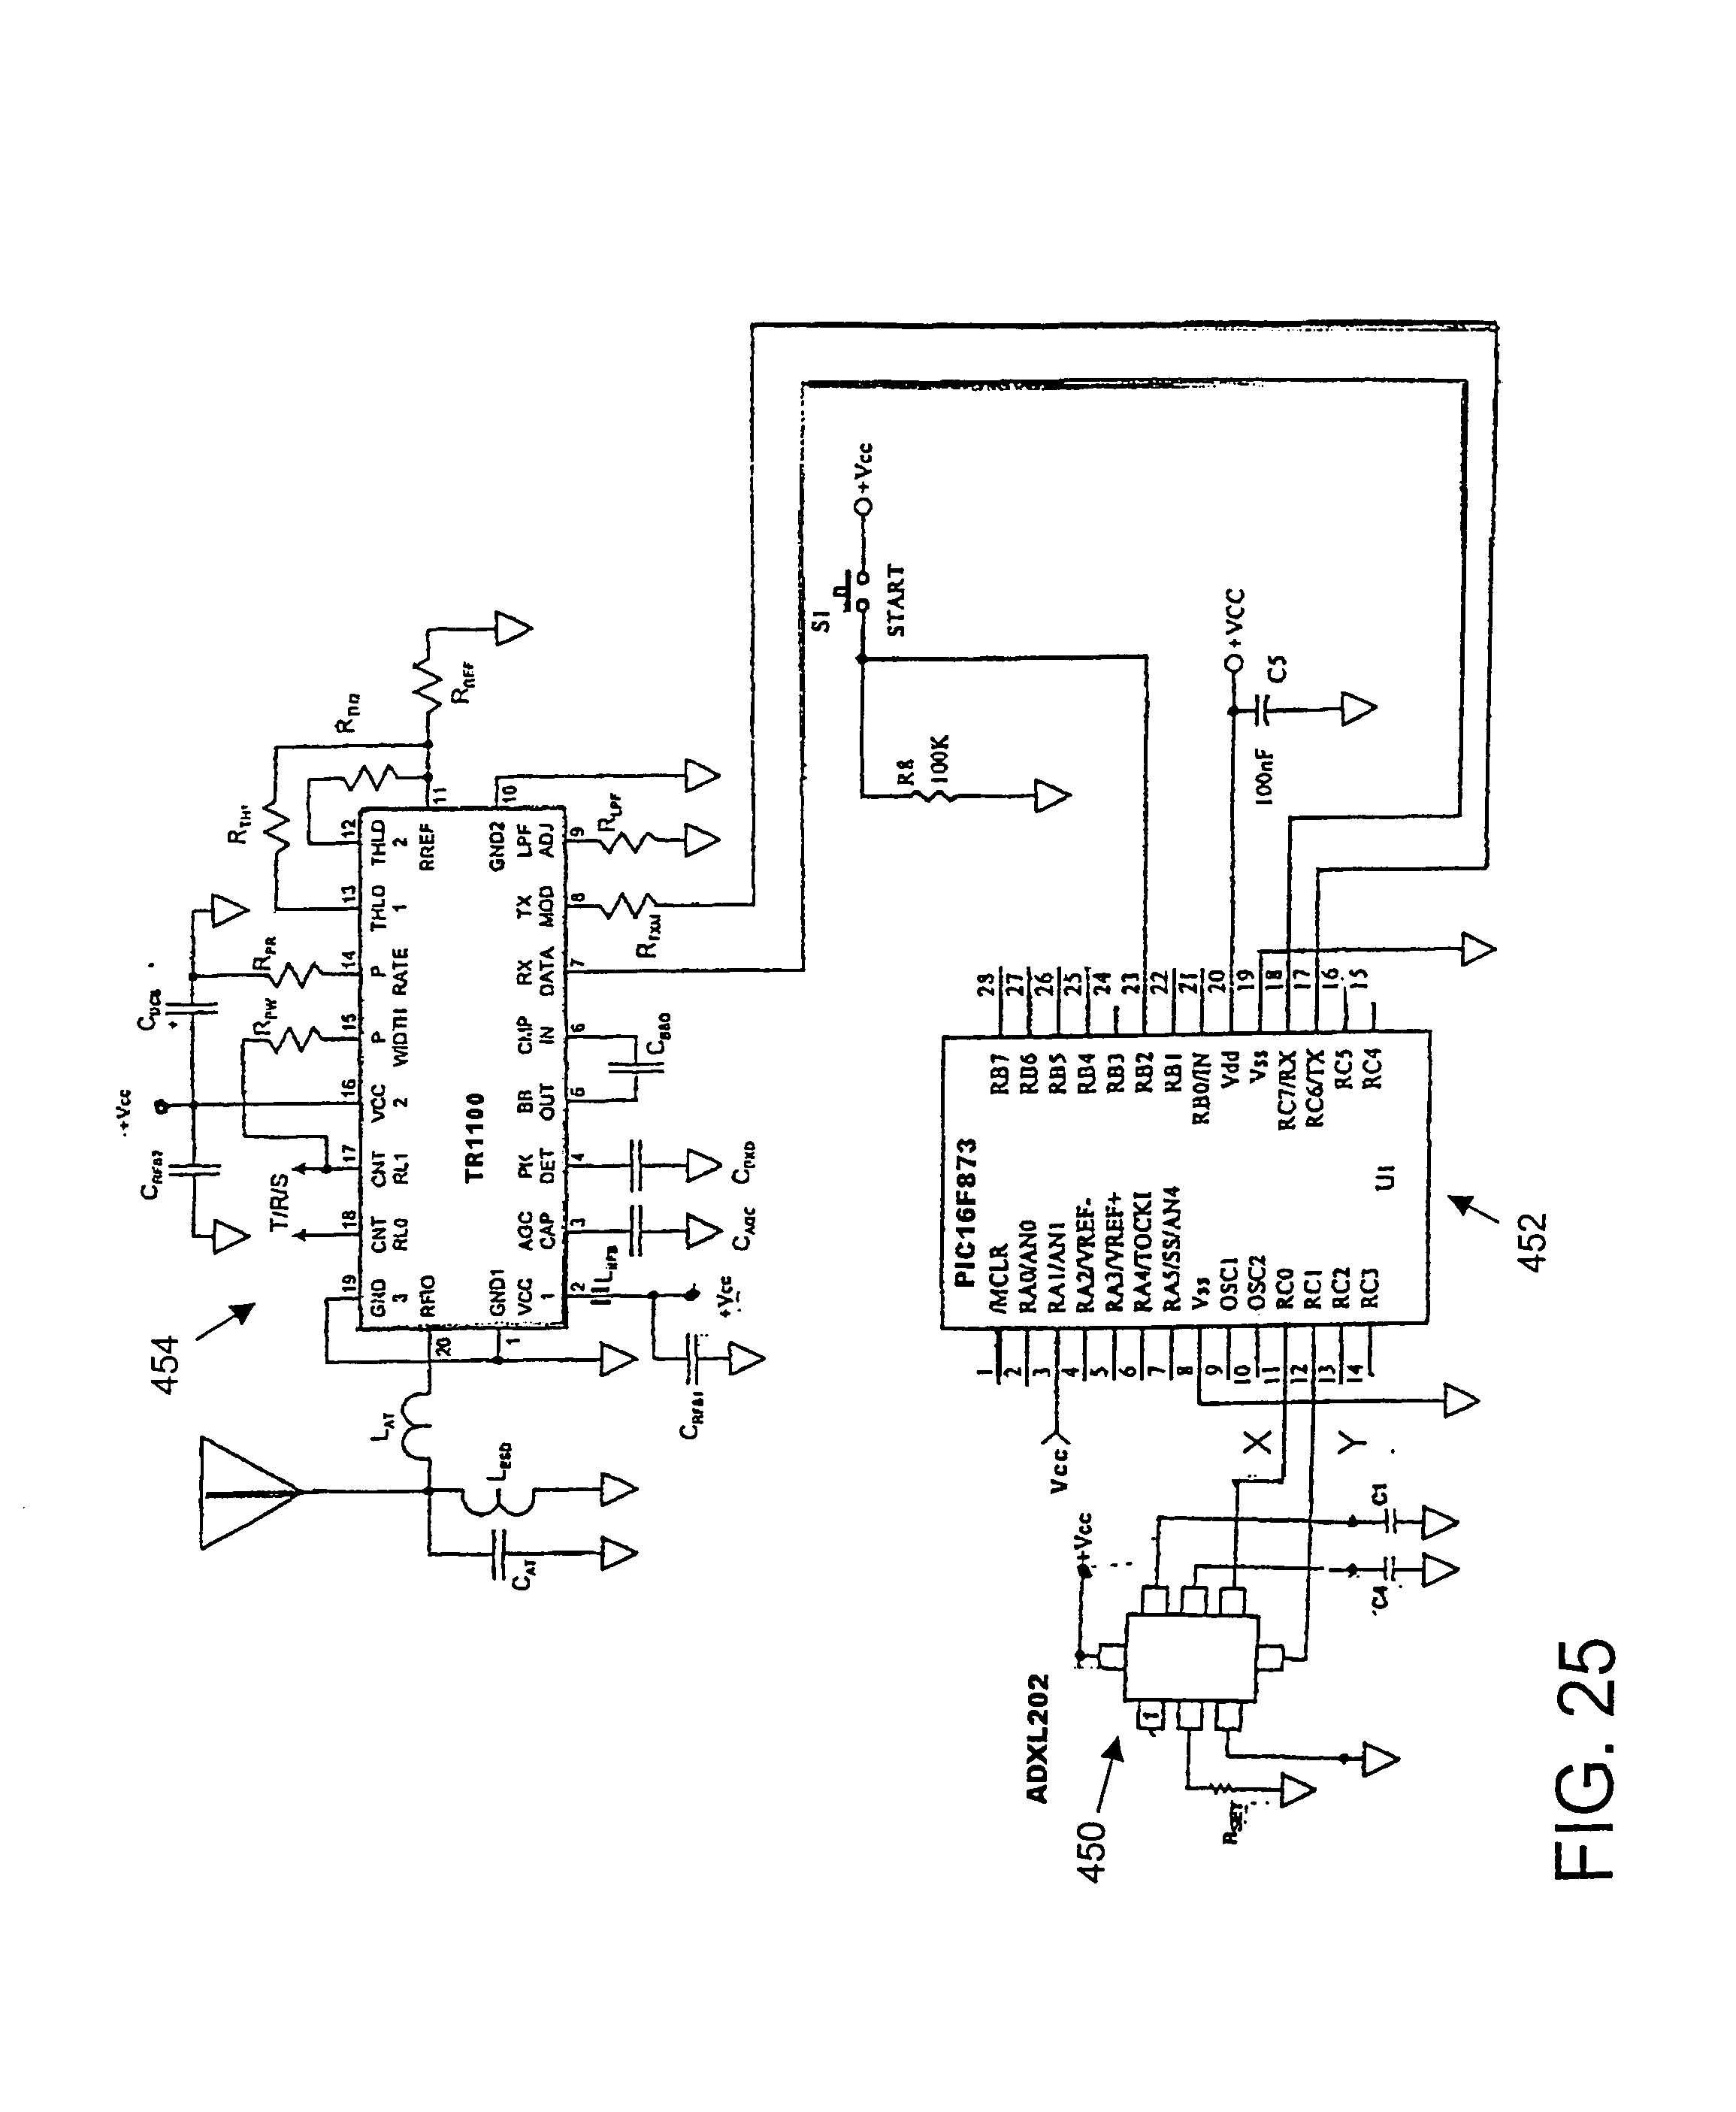 Patent Us 7113091 B2 Make A Simple Ic 741 Smoke Detector Circuit Schematic Diagram Images